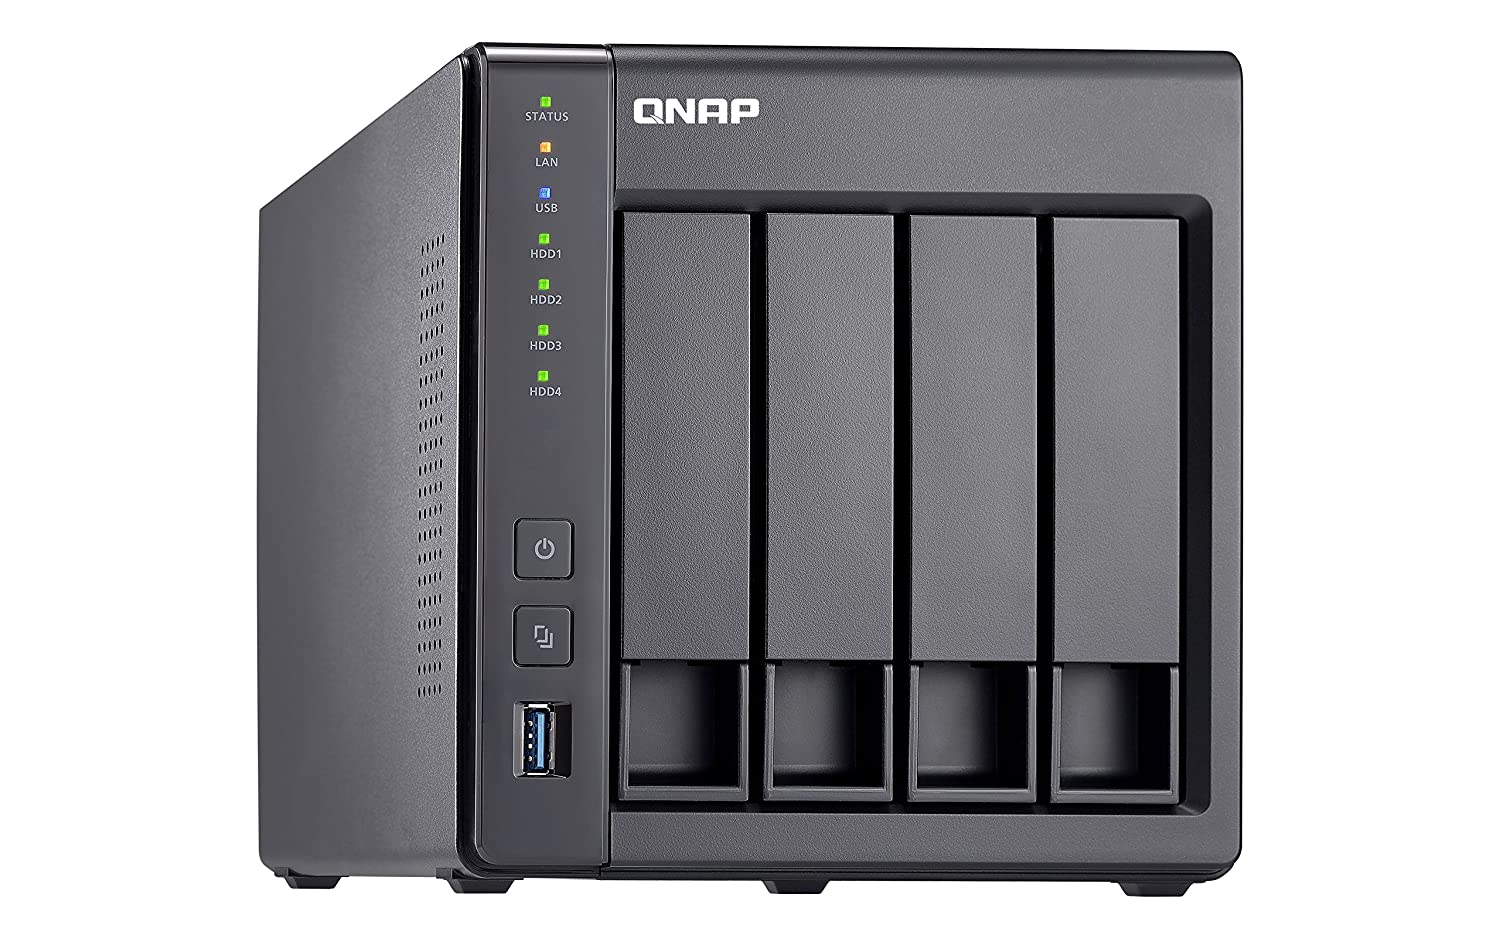 QNAP TS-431X-2G-USARM-based NAS with Hardware Encryption, Duad Core 1 7GHz,  2GB RAM, 1 x 10GbE(SFP+) ,2 x 1GbE